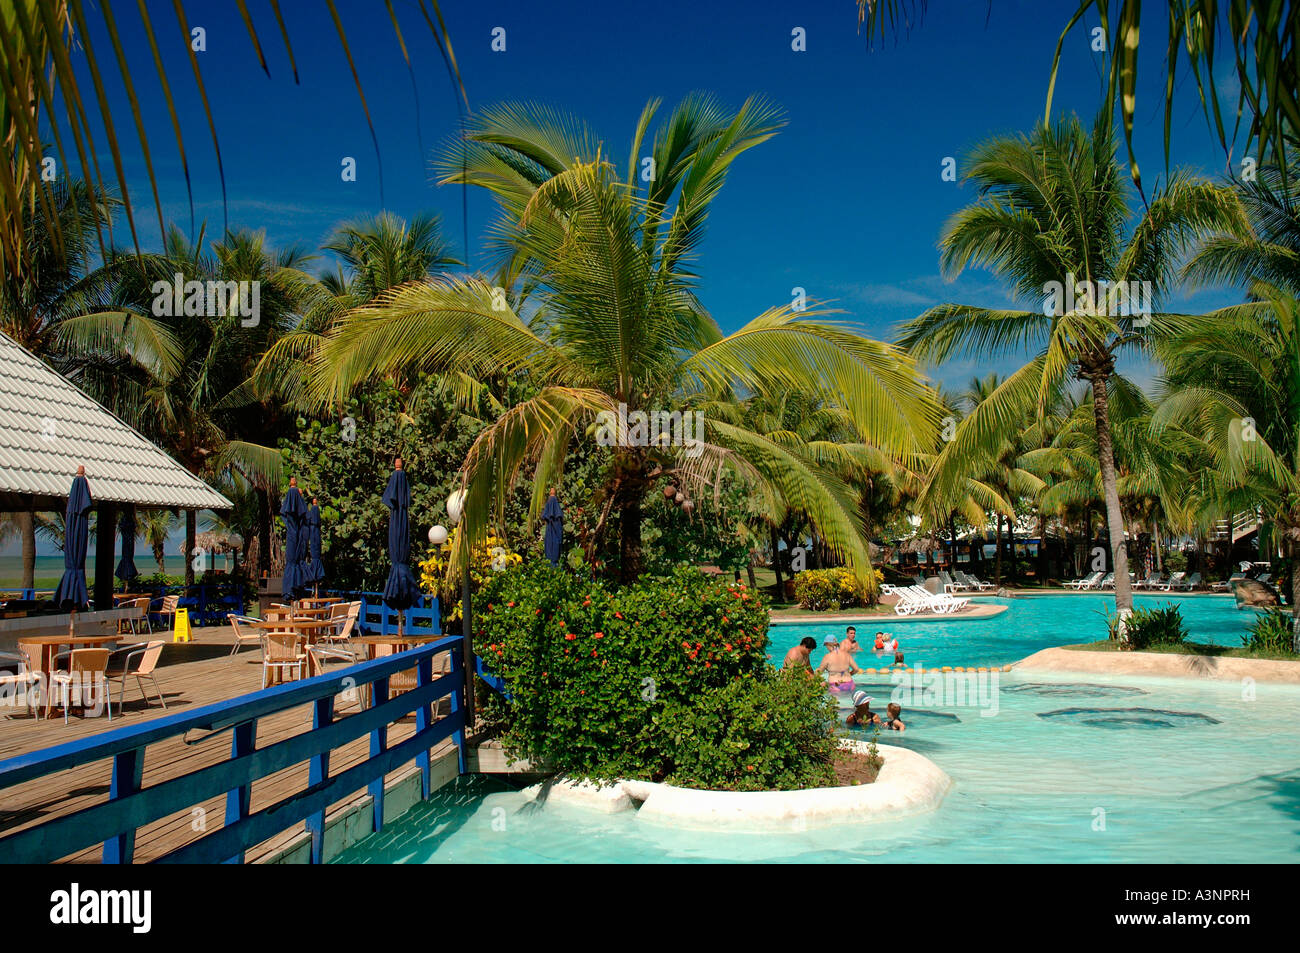 Hotel Fiesta Stock Photos & Hotel Fiesta Stock Images - Alamy